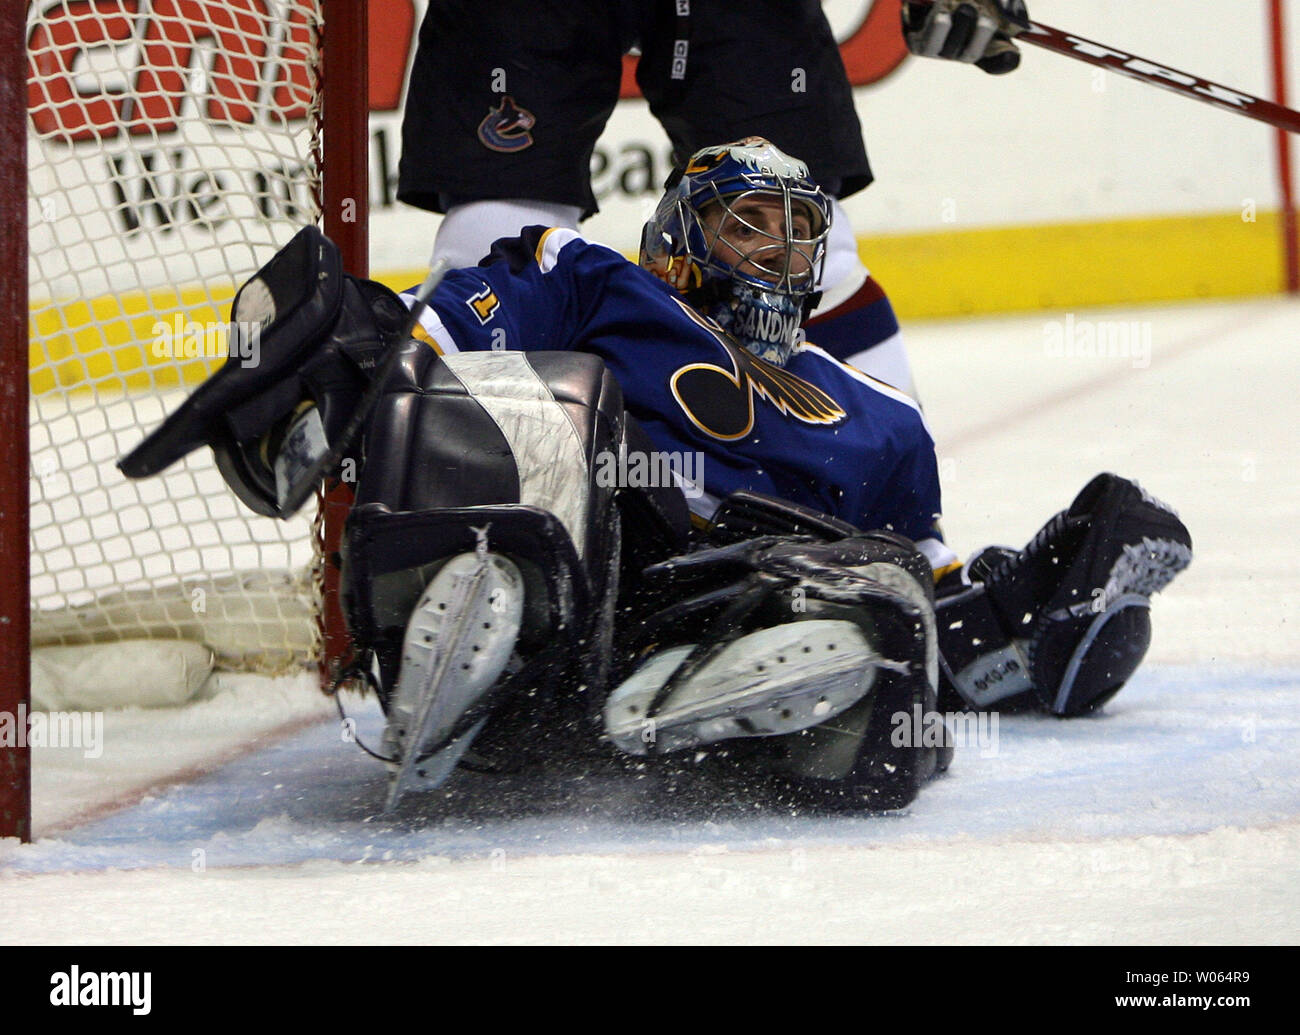 St. Louis Blues goaltender Curtis Sanford stops a shot on goal against the Vancouver Canucks in the third period at the Savvis Center in St. Louis on January 23, 2006. Sanford stopped all 34 shots on goal as the Blues snap a nine game losing streak, 4-0. (UPI Photo/Bill Greenblatt) - Stock Image